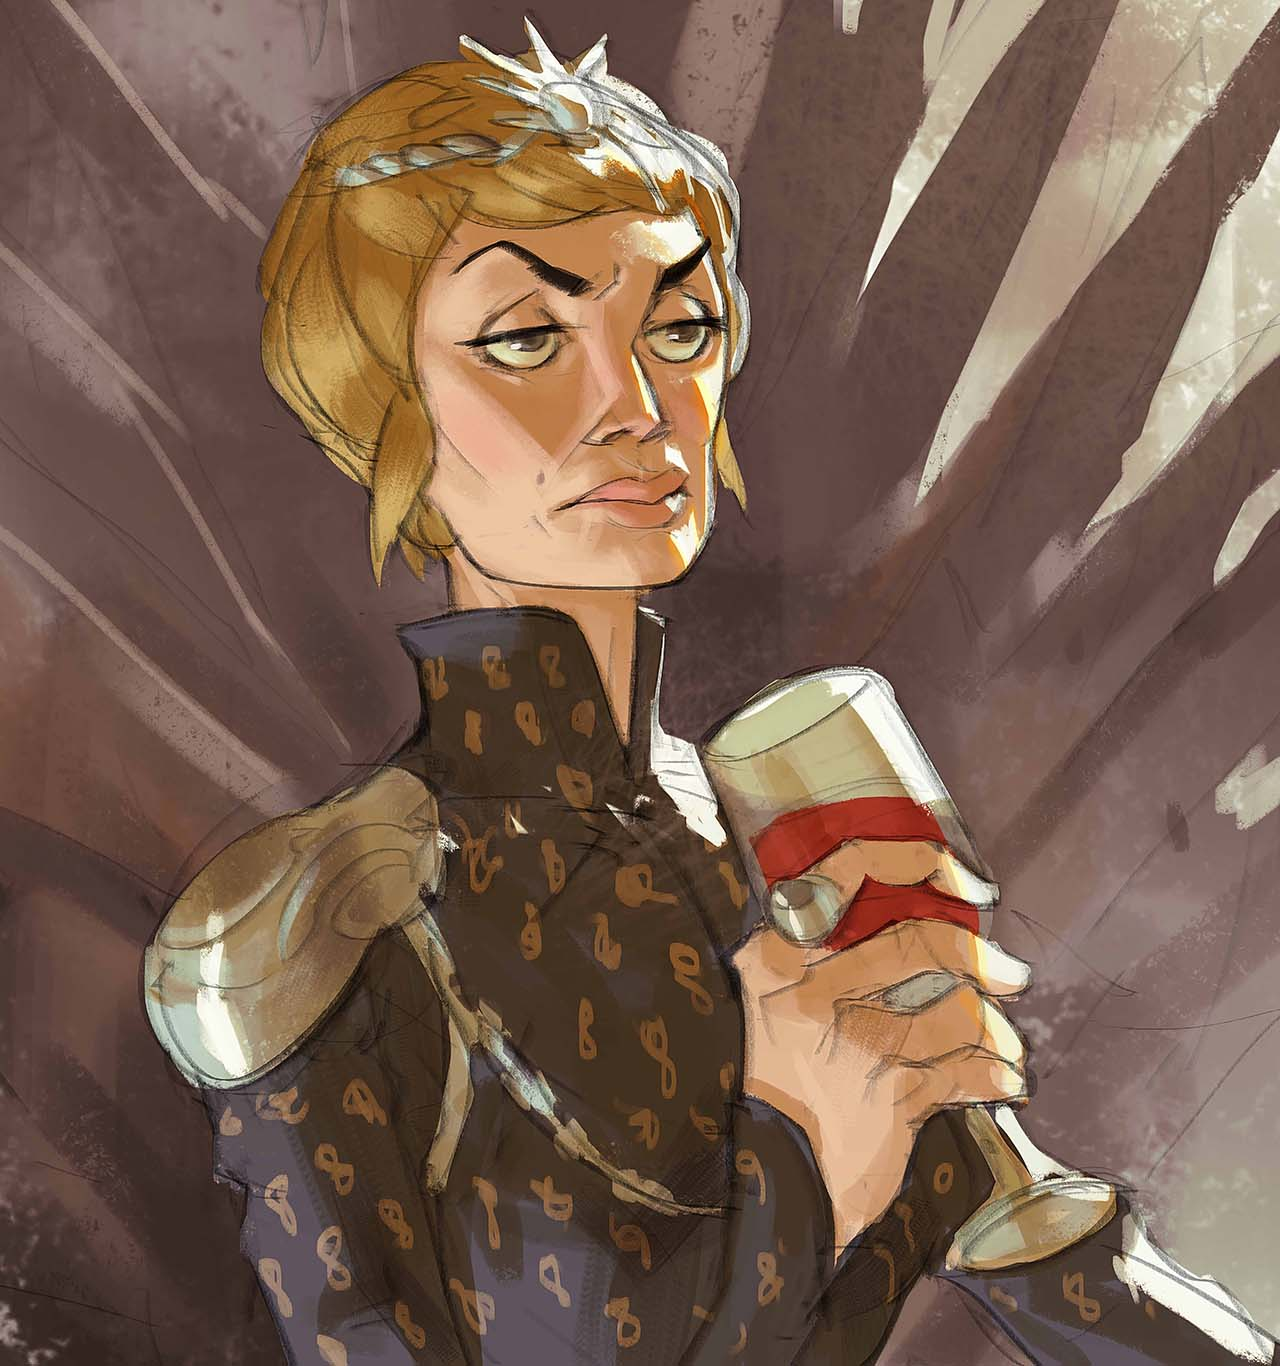 Artist Creates Unique Character Arts From Game Of Thrones – Cersei Lannister Character Art By Ramón Nuñez